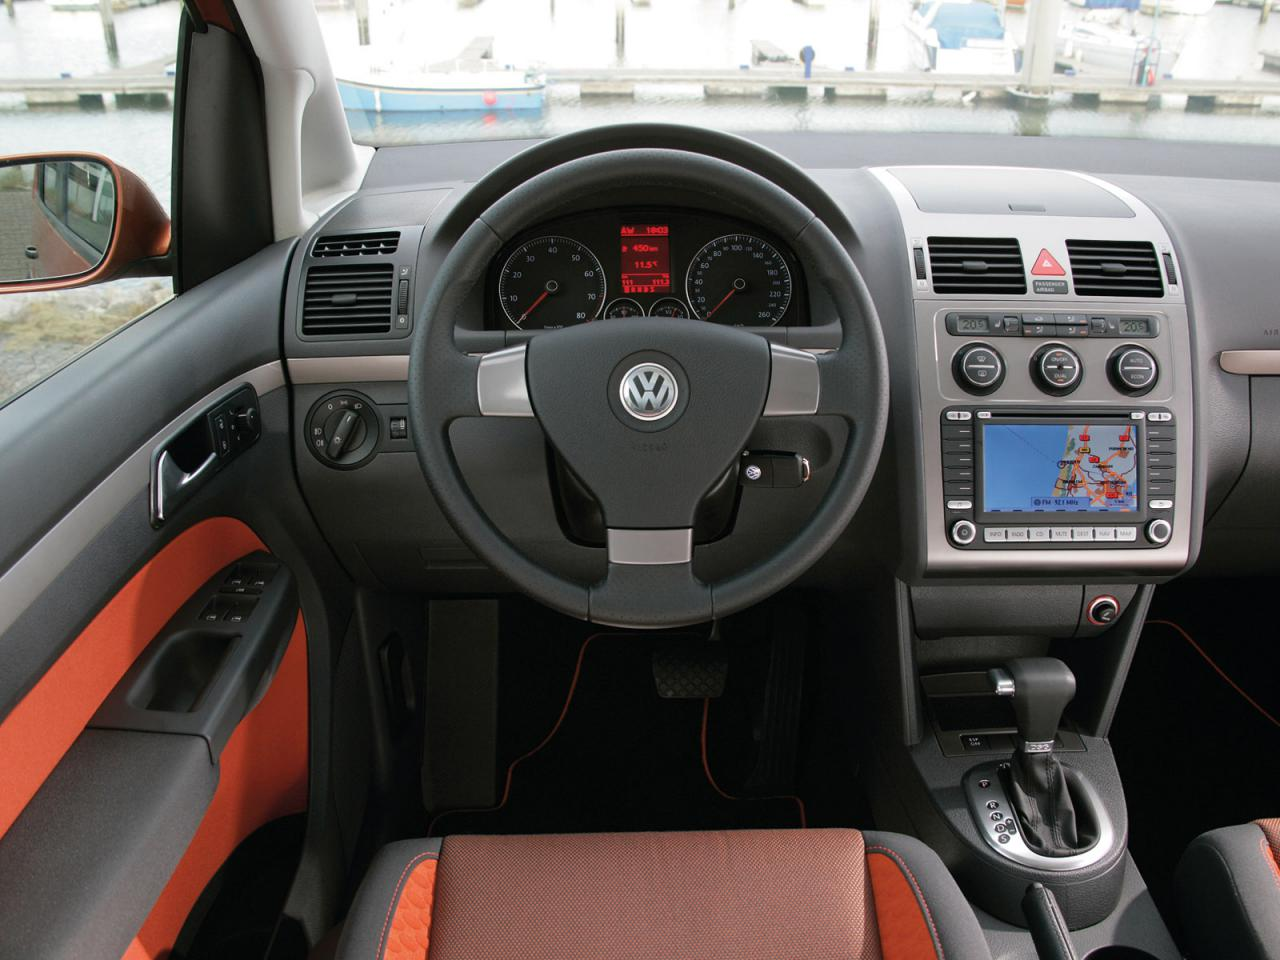 Vw volkswagen touran i tourancross 004inside for Interior touran